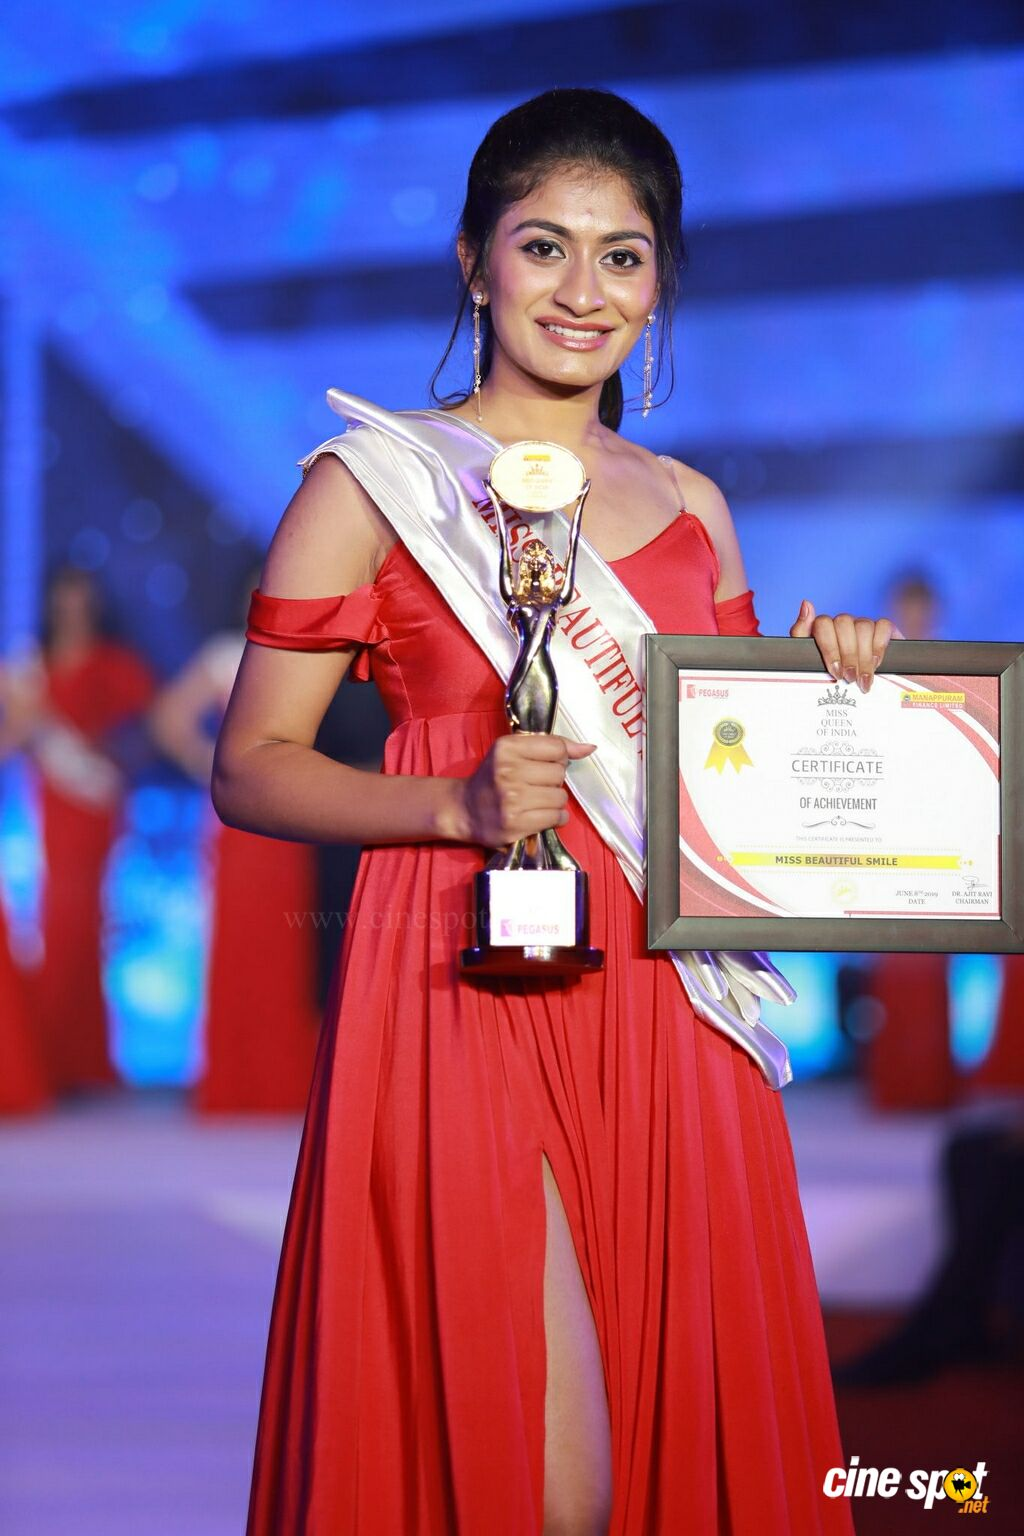 Ms Tanya Sinha from Jharkhand Crowned Manappuram Miss